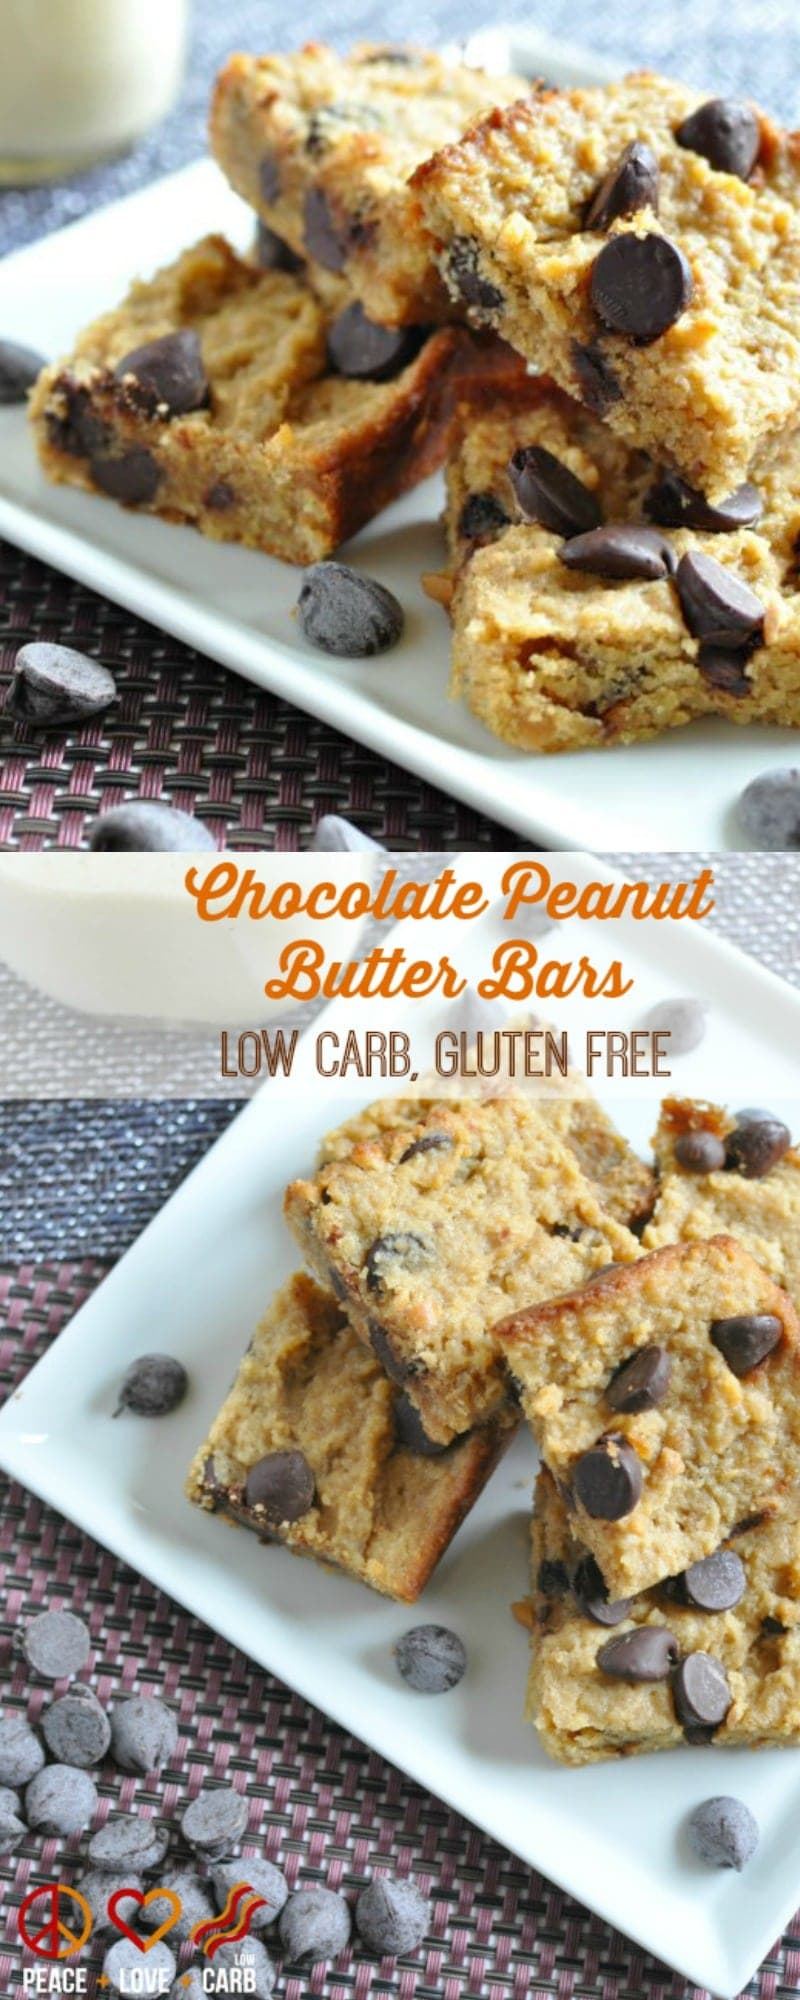 Chocolate Peanut Butter Bars - Low Carb, Gluten Free | Peace Love and Low Carb